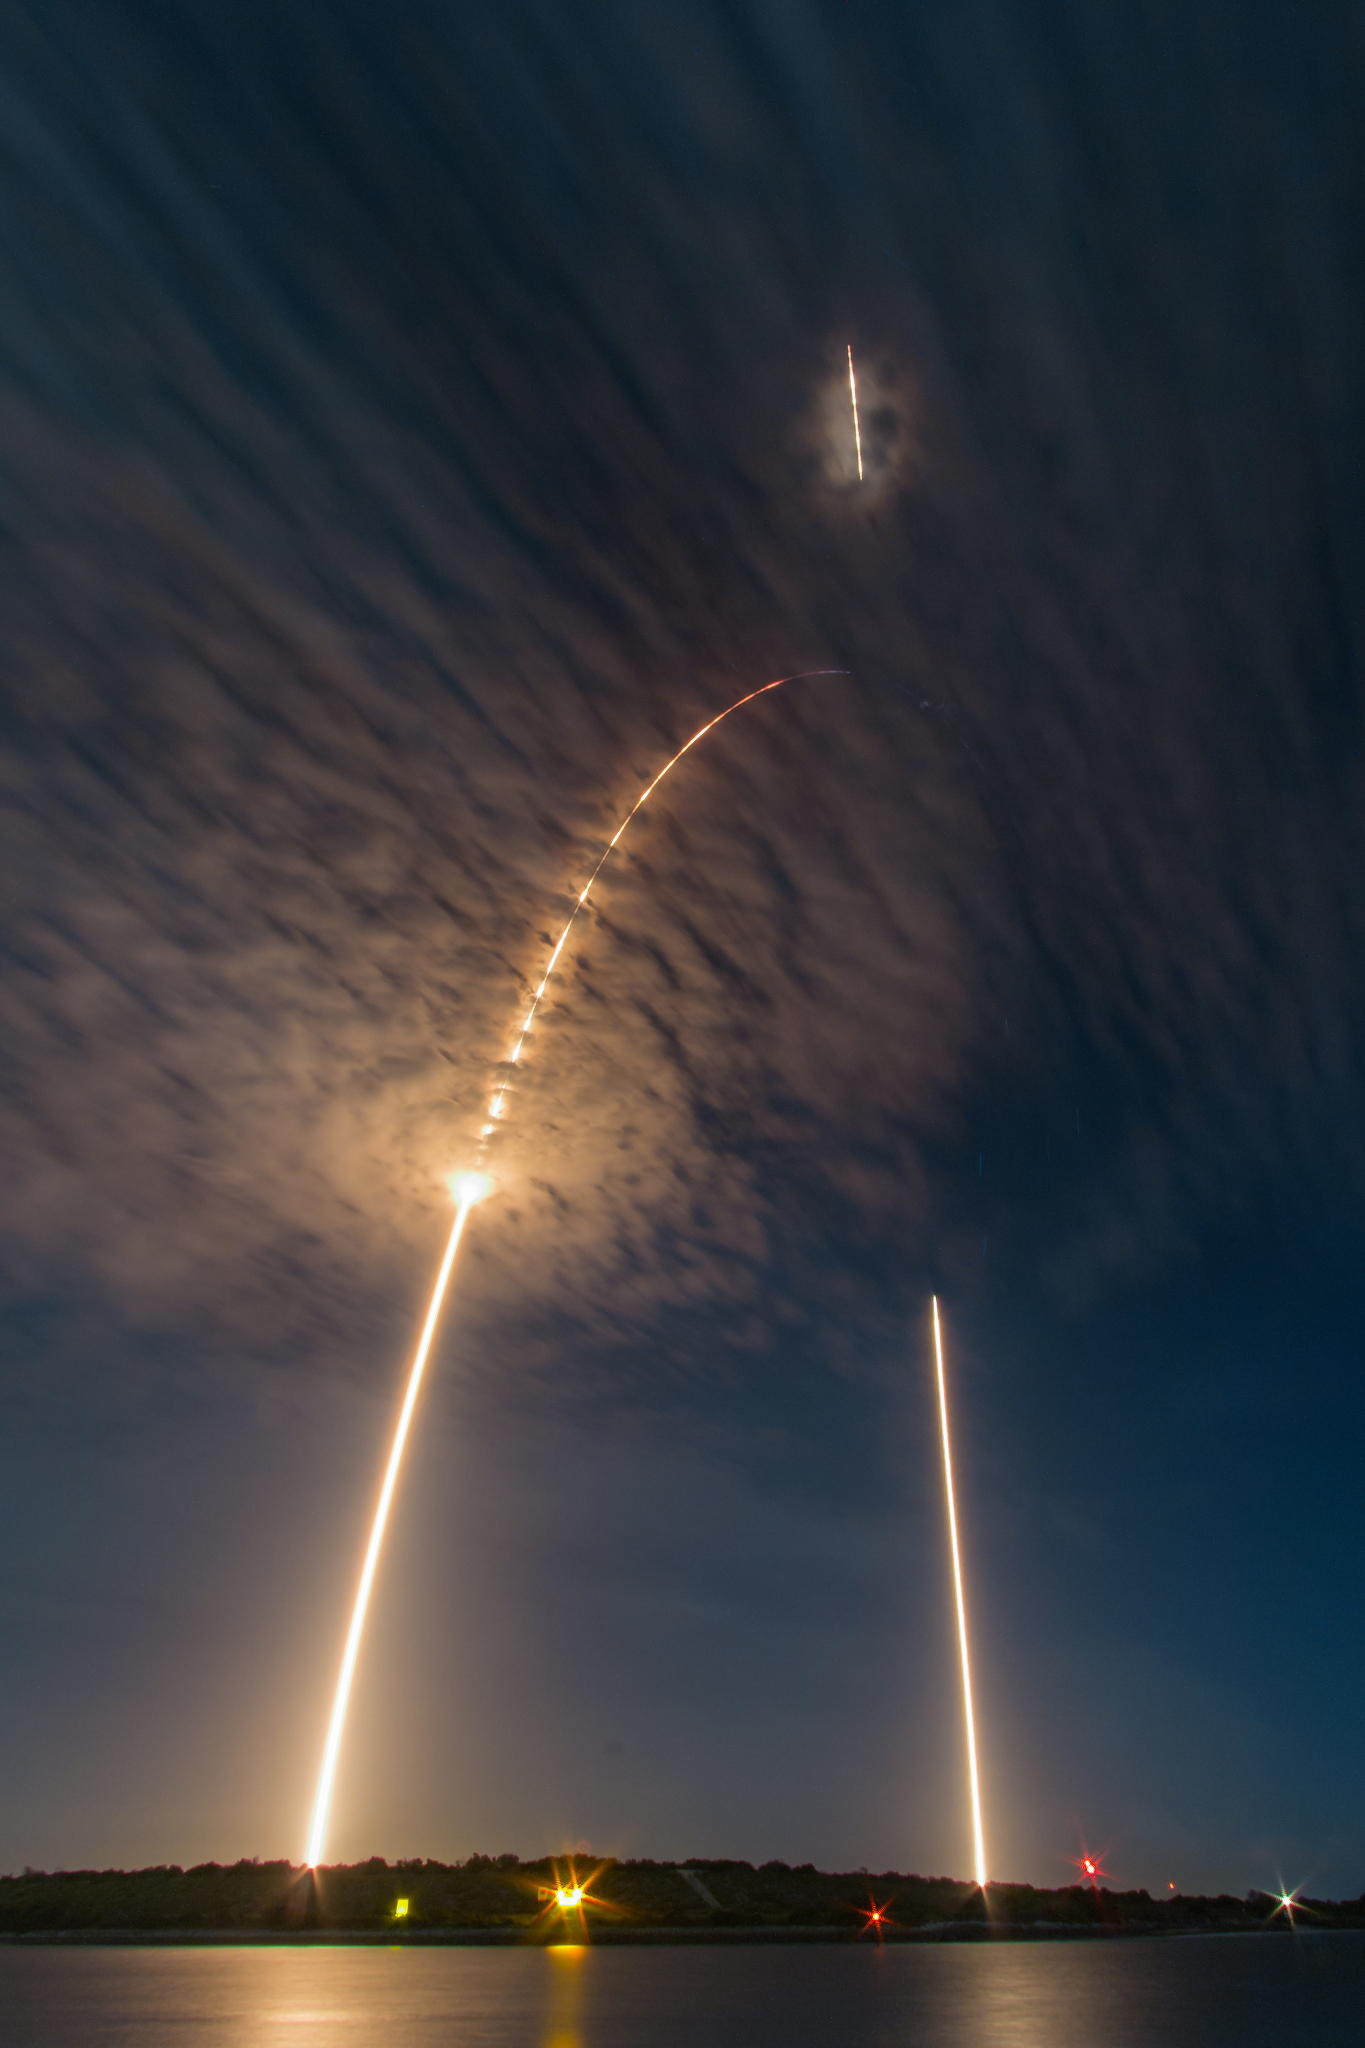 APOD: 2016 July 21 - Falcon 9: Launch and Landing